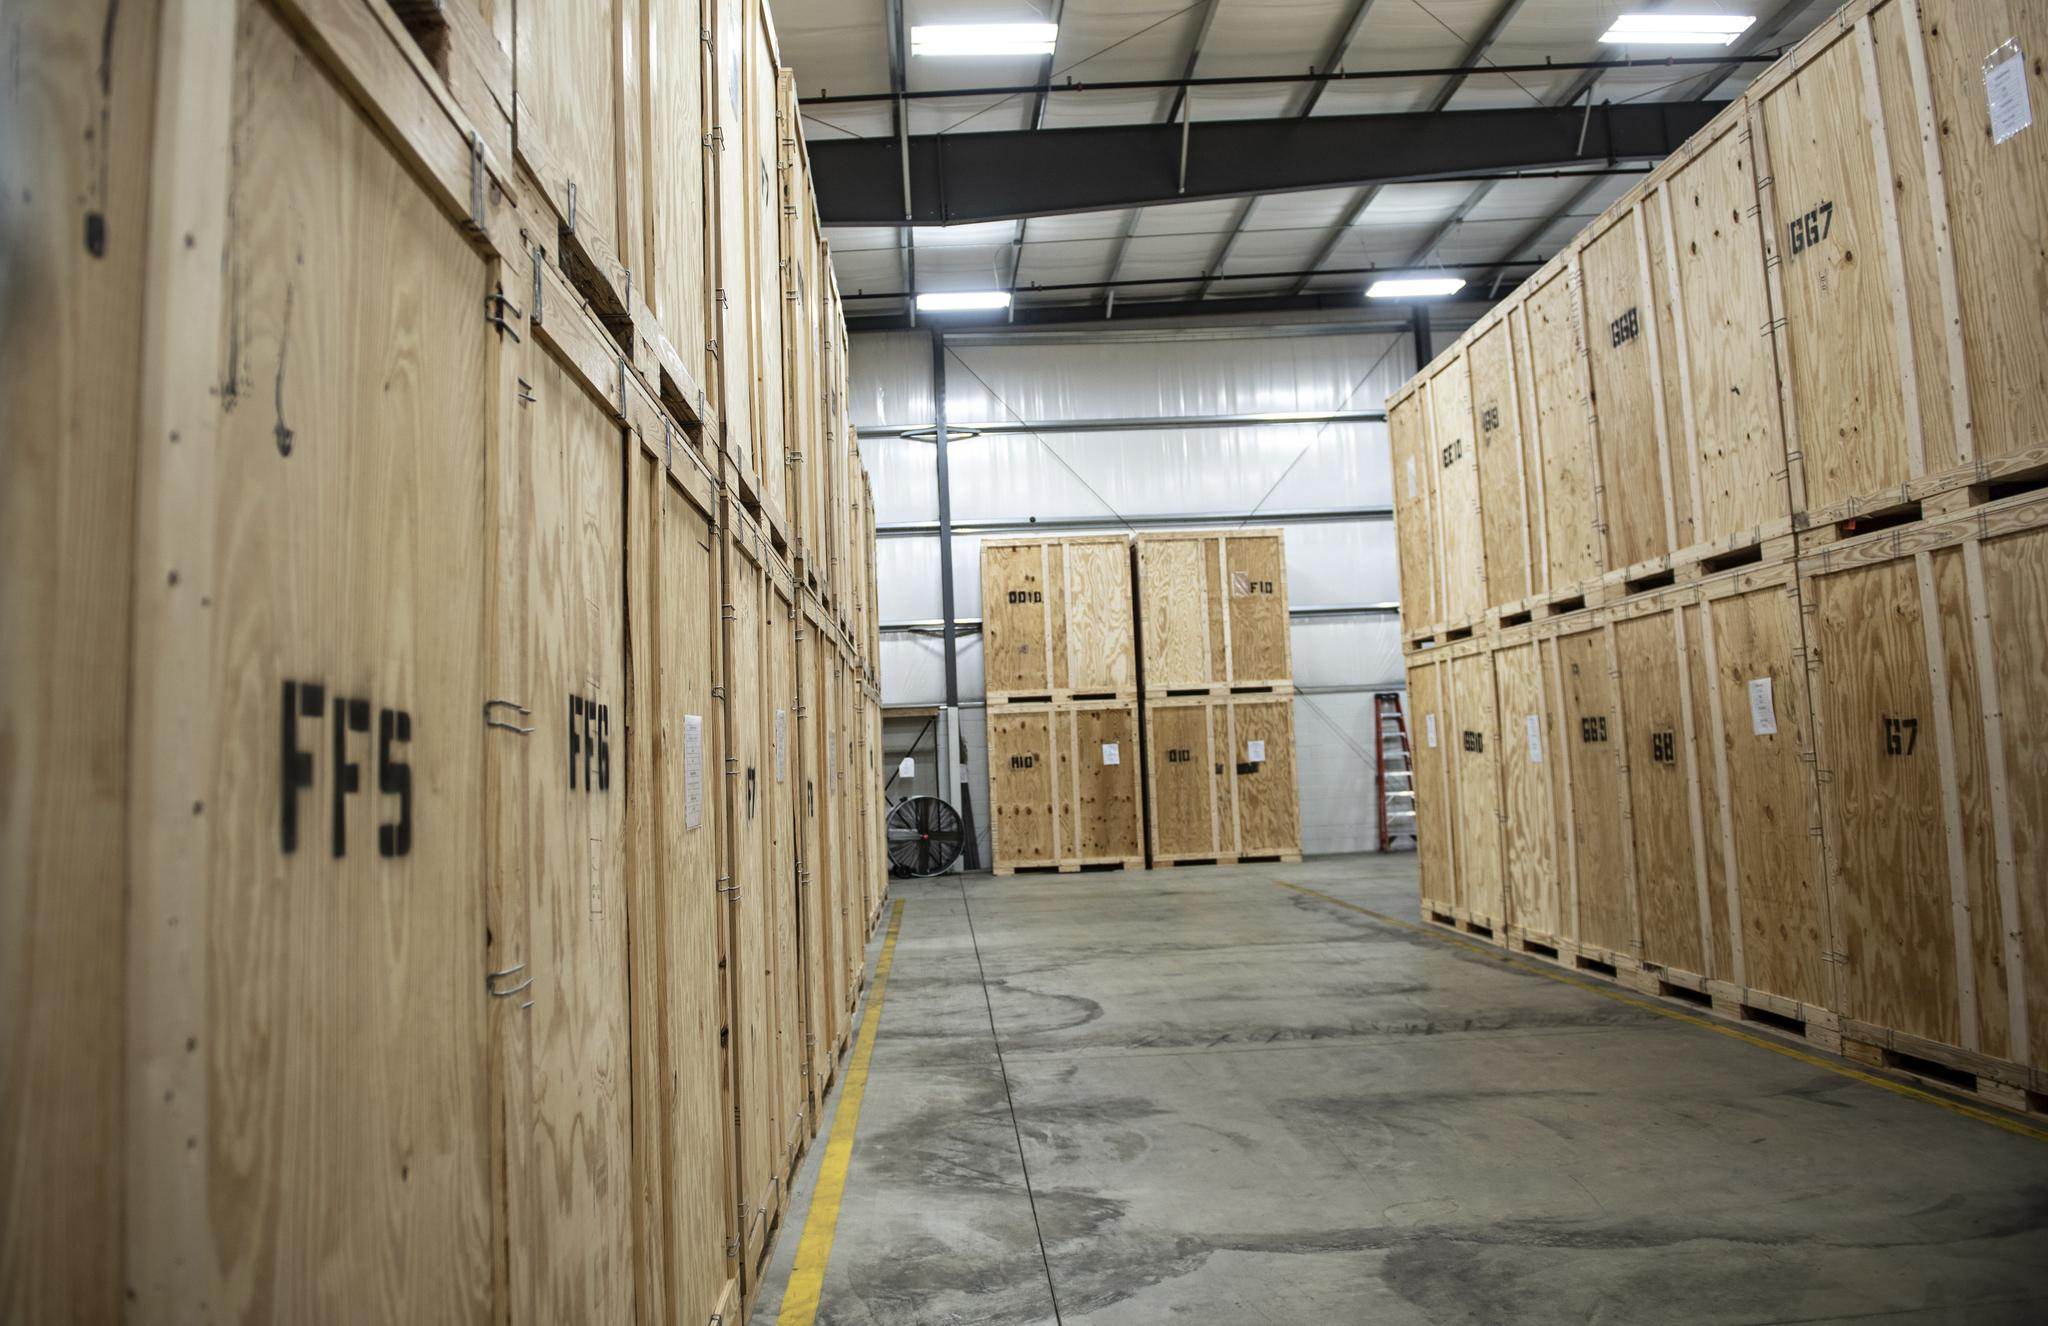 Storage facility showing climate regulated storage options